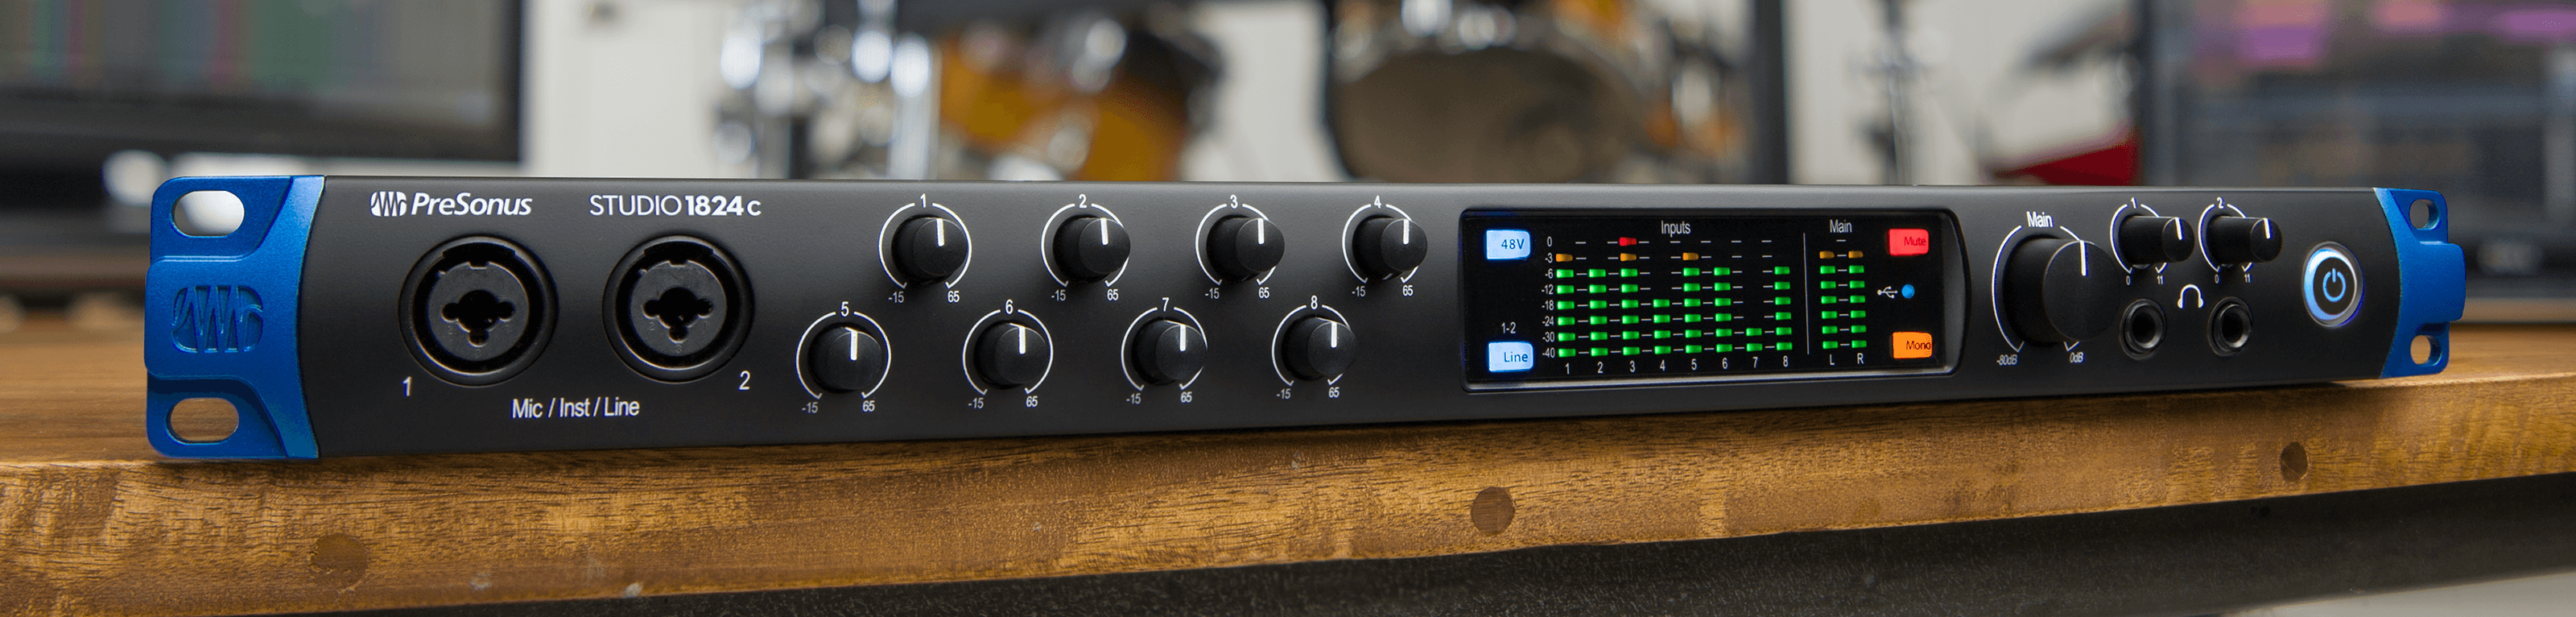 Usb C Audio Interface 2019 : presonus introduces studio series usb c audio interfaces ~ Hamham.info Haus und Dekorationen